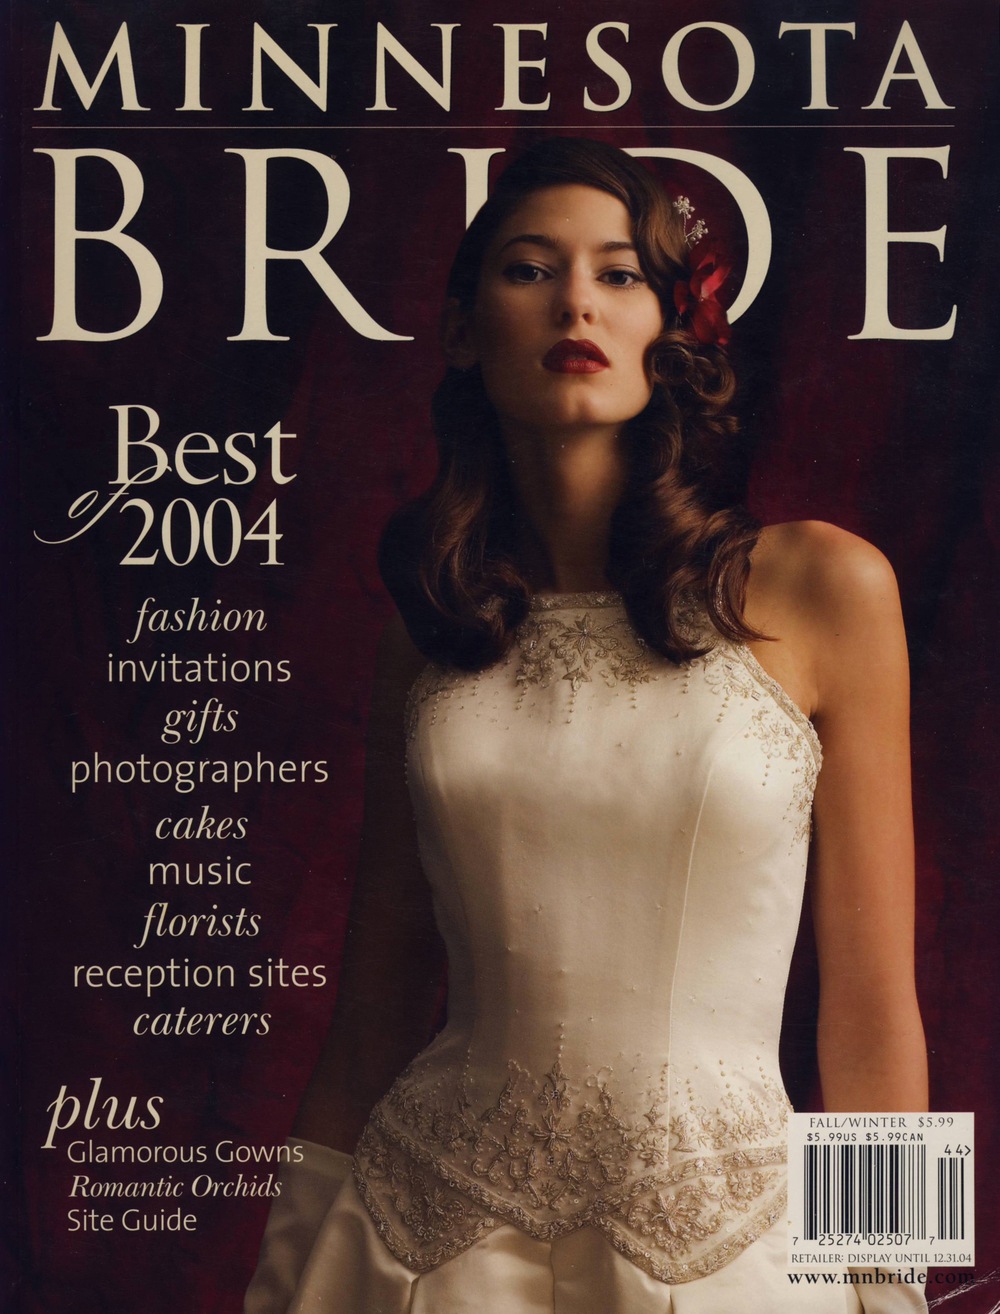 Minnesota Bride, Fall/Winter 2004